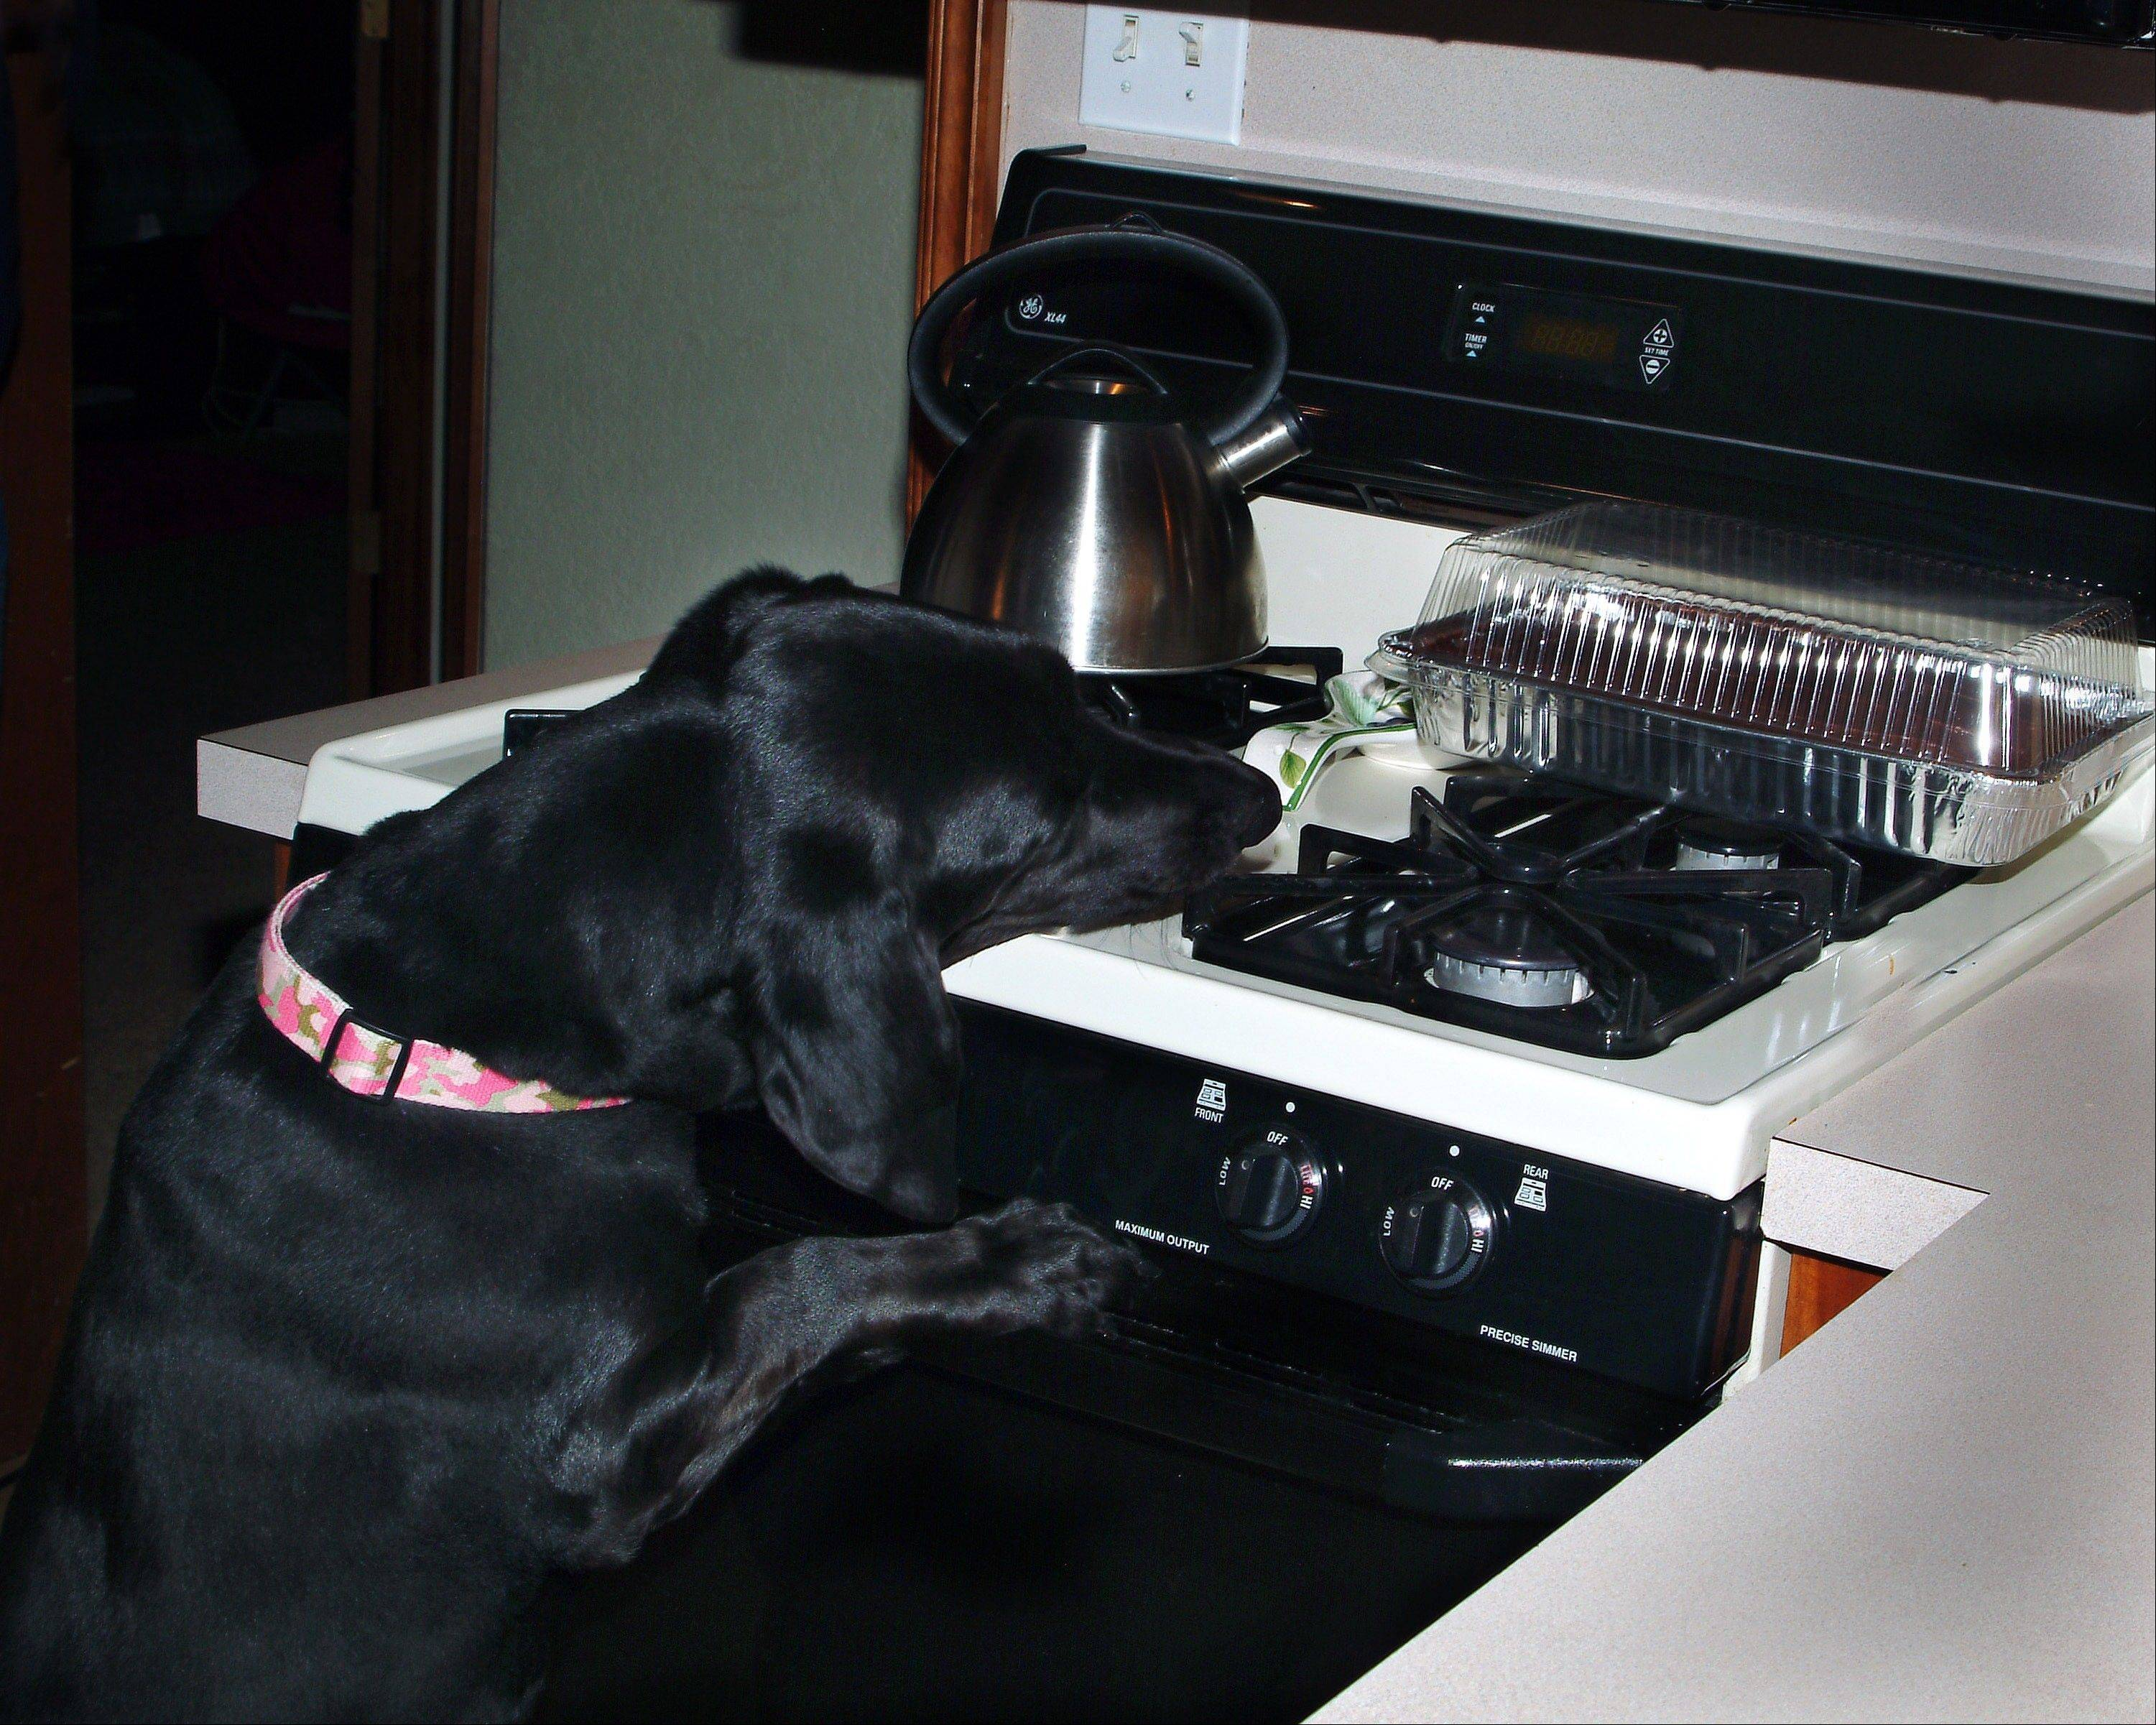 Lucy, 5-year-old, lab-basset hound mix, reaches for a homemade cake on a stove in Norman, Okla. Pets and other animals set about 510 house fires every year in this country, the majority involving a stove or oven, lamp or light fixture, a candle, embers or ashes from a fireplace or a space heater.